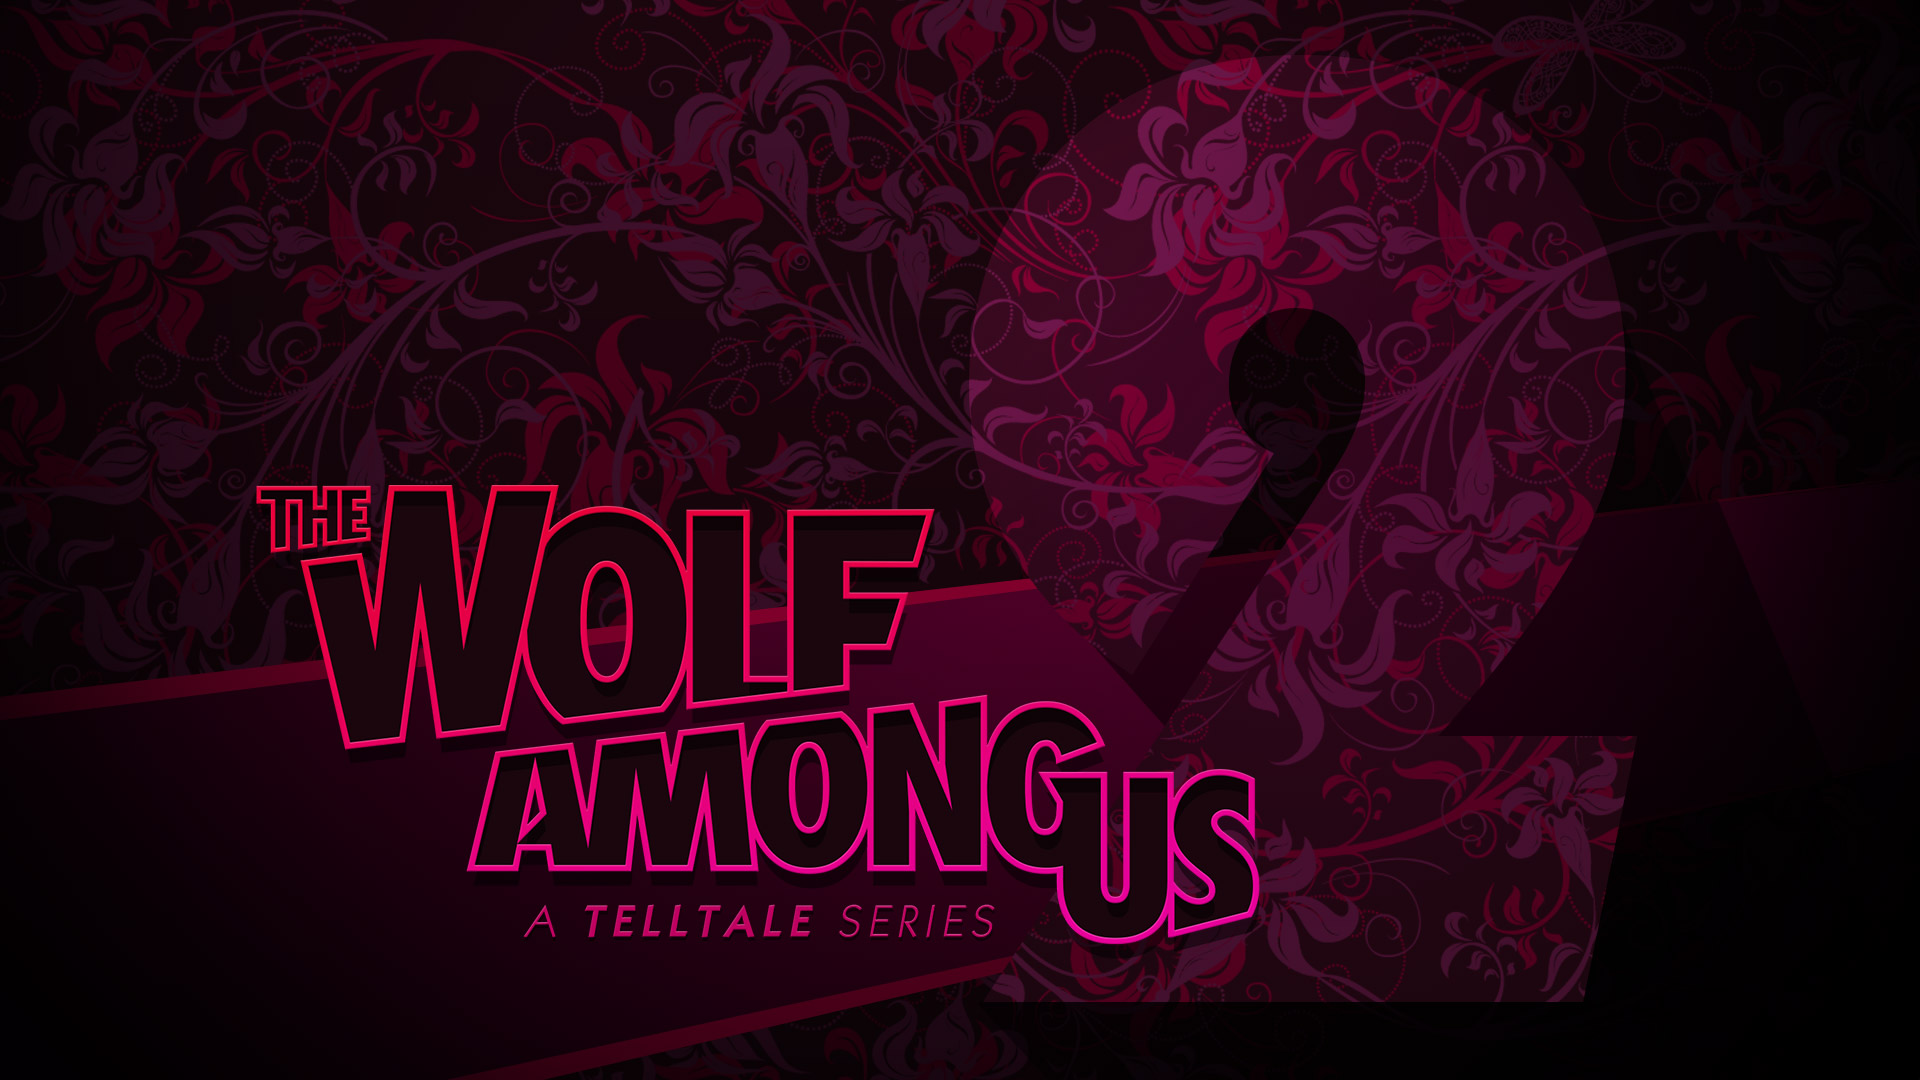 Free The Wolf Among Us 2 Wallpaper in 1920x1080